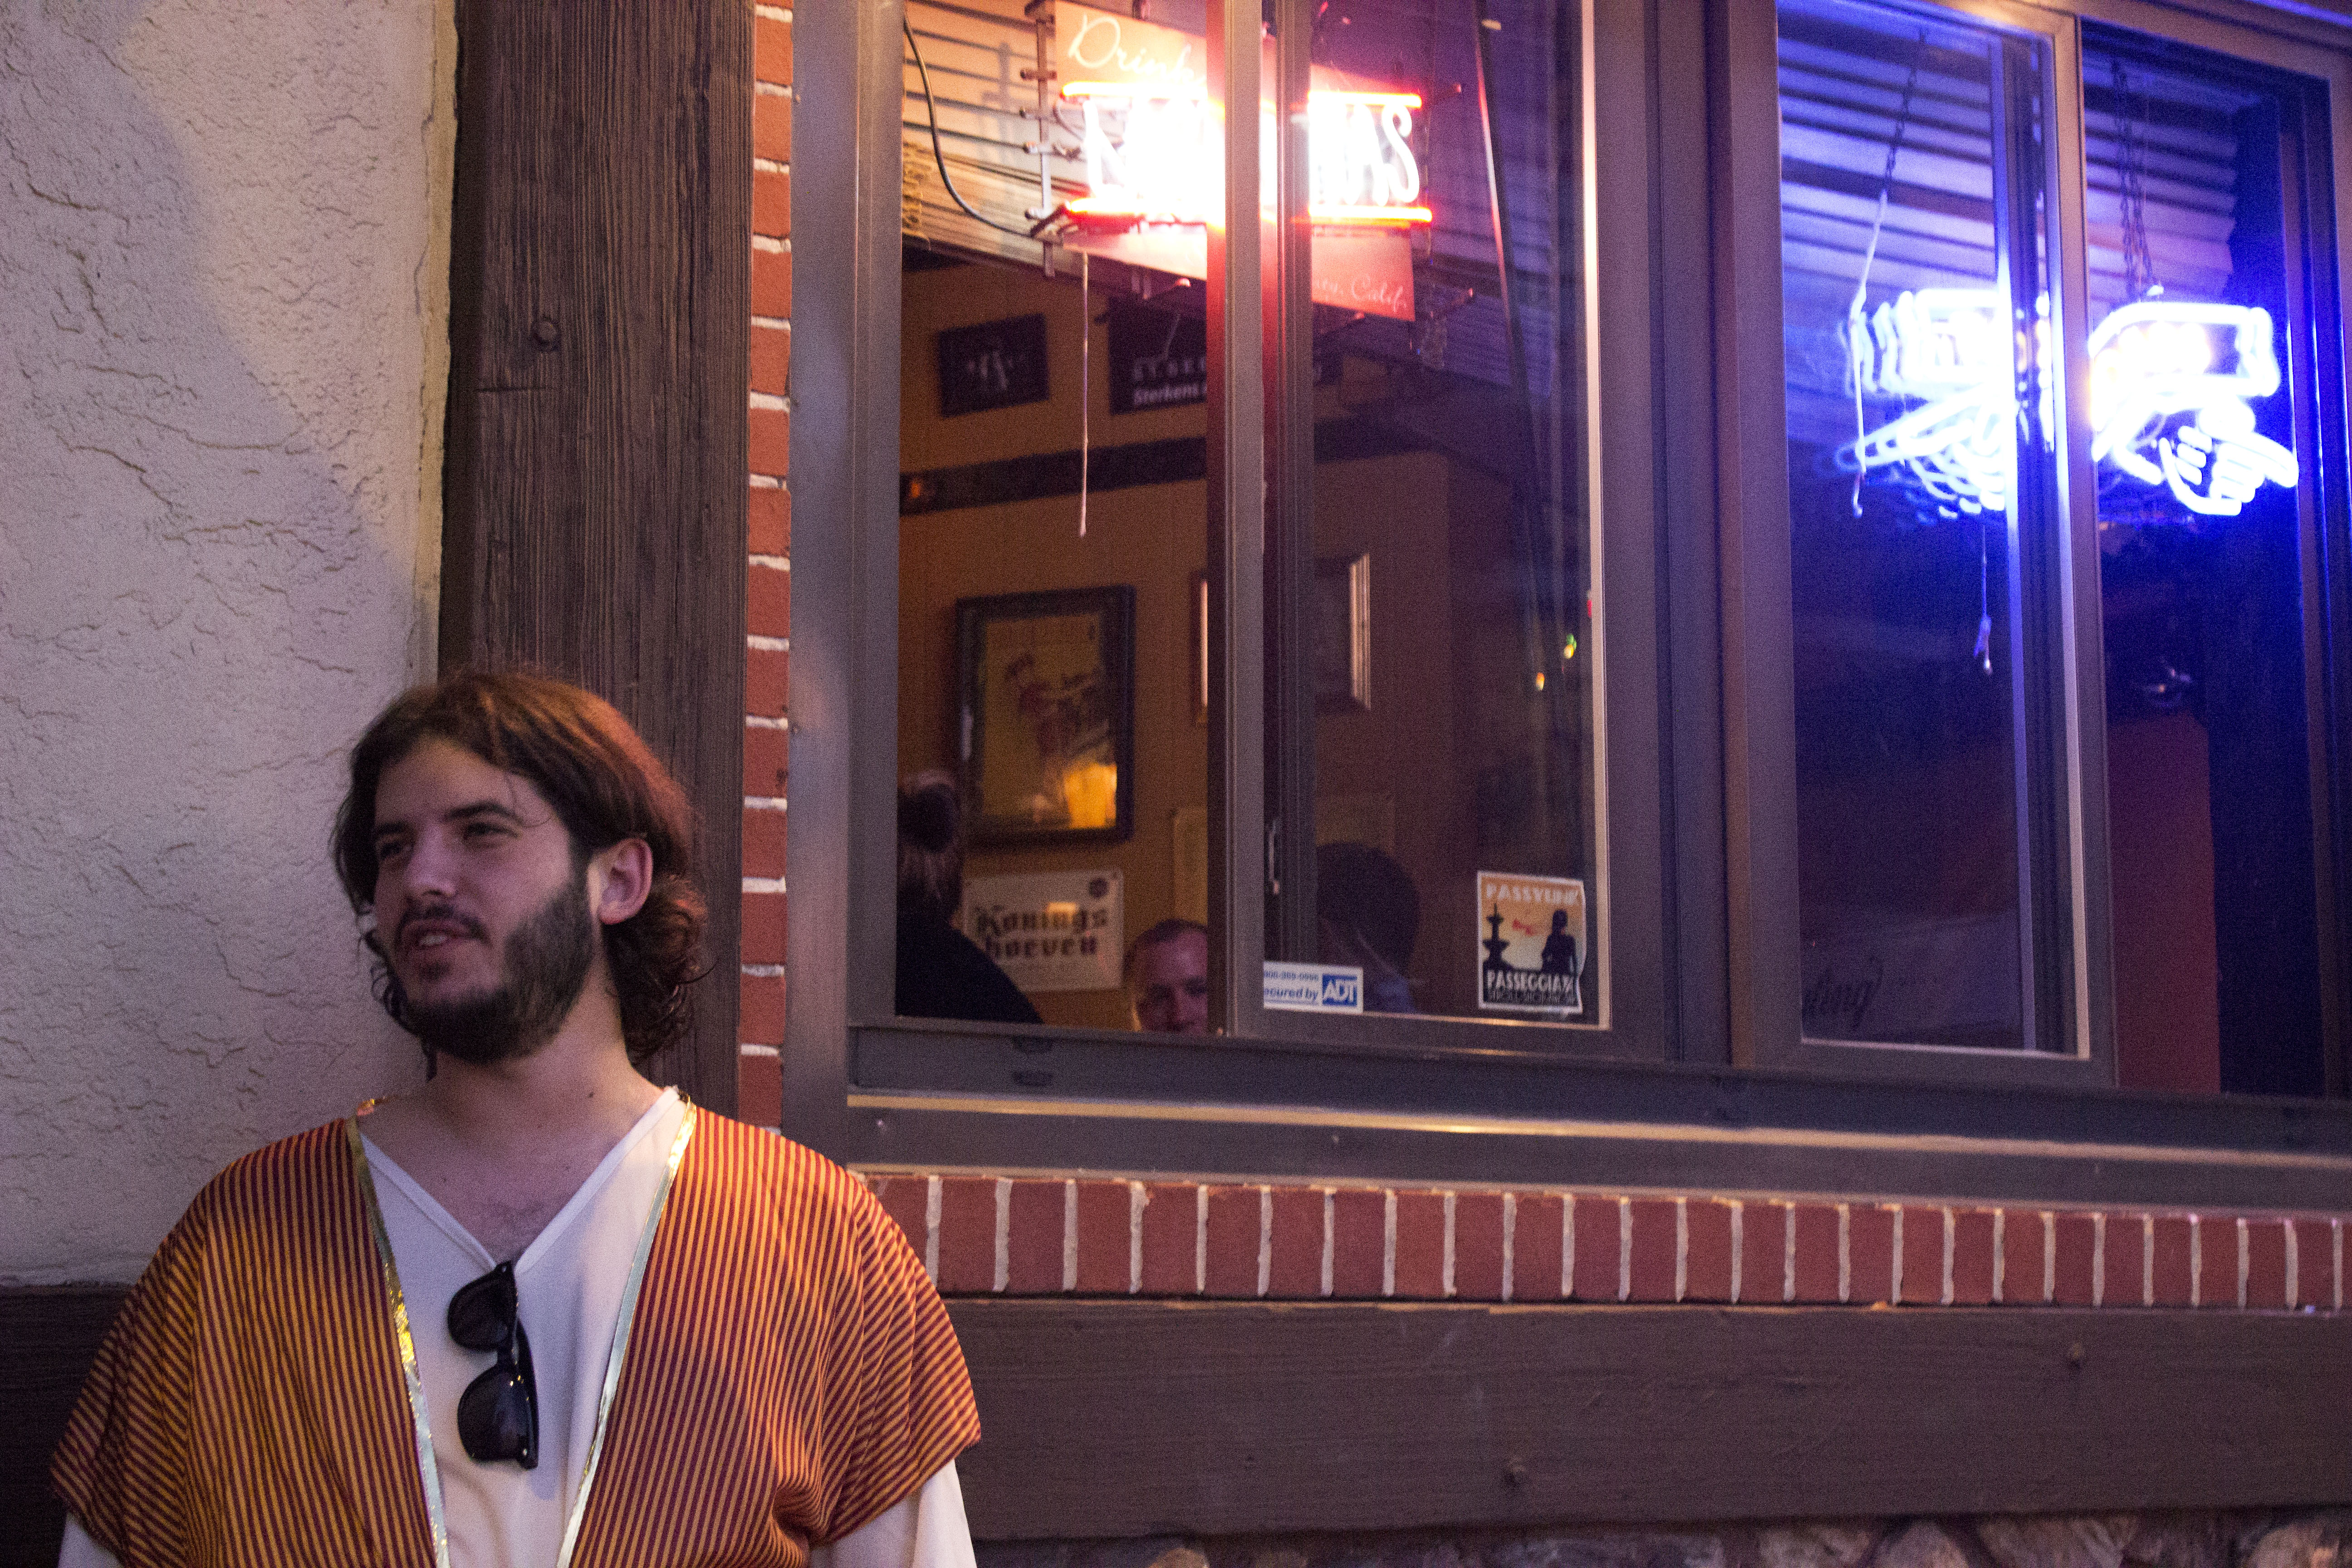 Dave Goldstein, an employee of Founders Brewing Company, visited the bar on Sept. 24 dressed as Jesus.